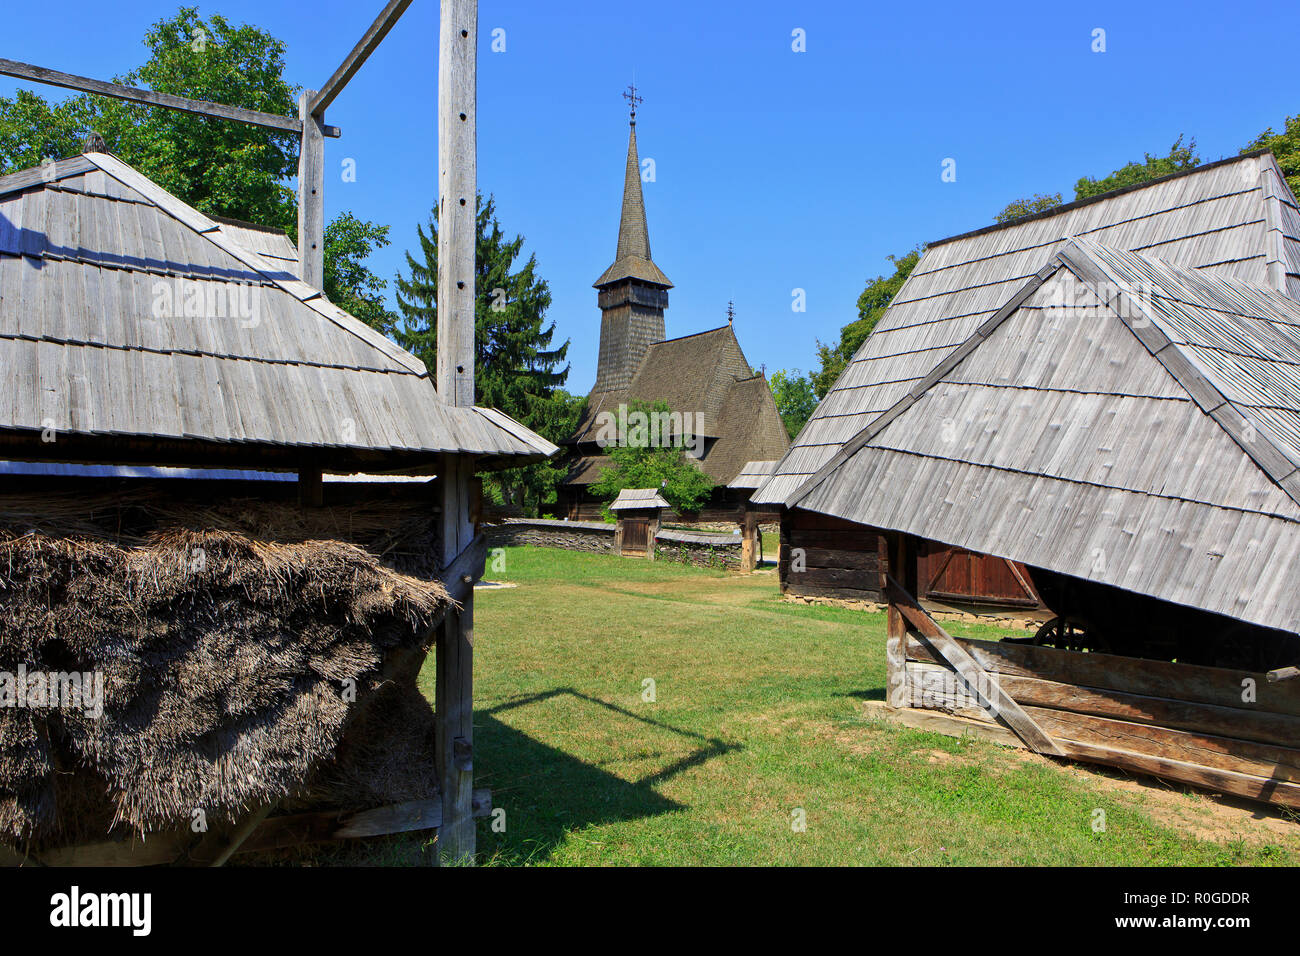 A beautiful wooden church amidst various traditional farmhouses at the Dimitrie Gusti National Village Museum in Bucharest, Romania - Stock Image